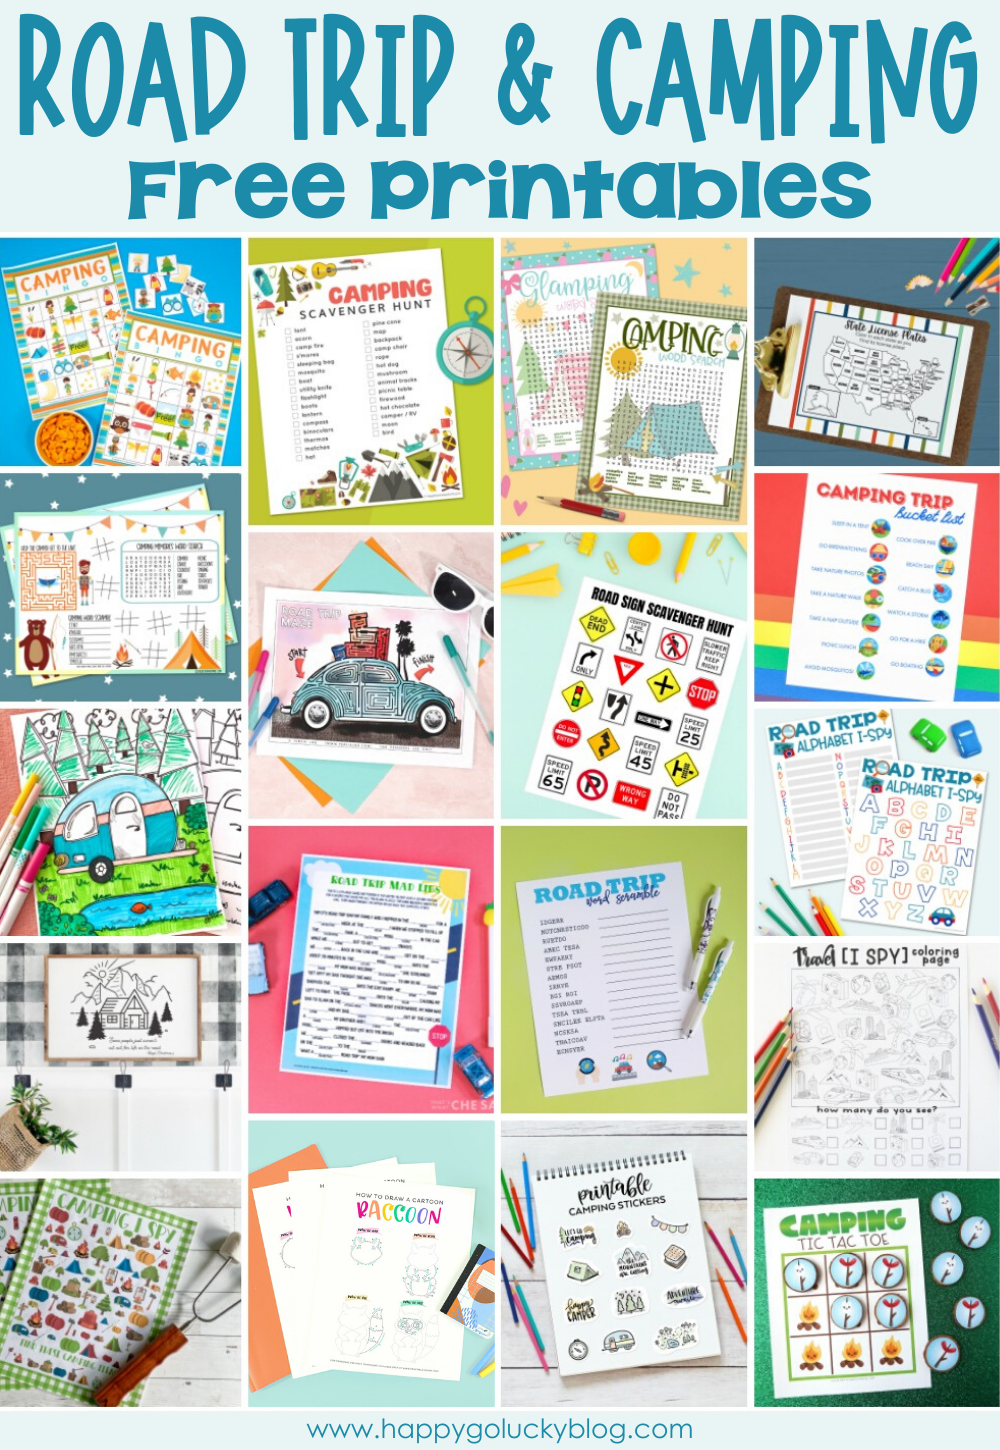 https://www.happygoluckyblog.com/wp-content/uploads/2020/07/Road-Trip-Camping-Printables1.png